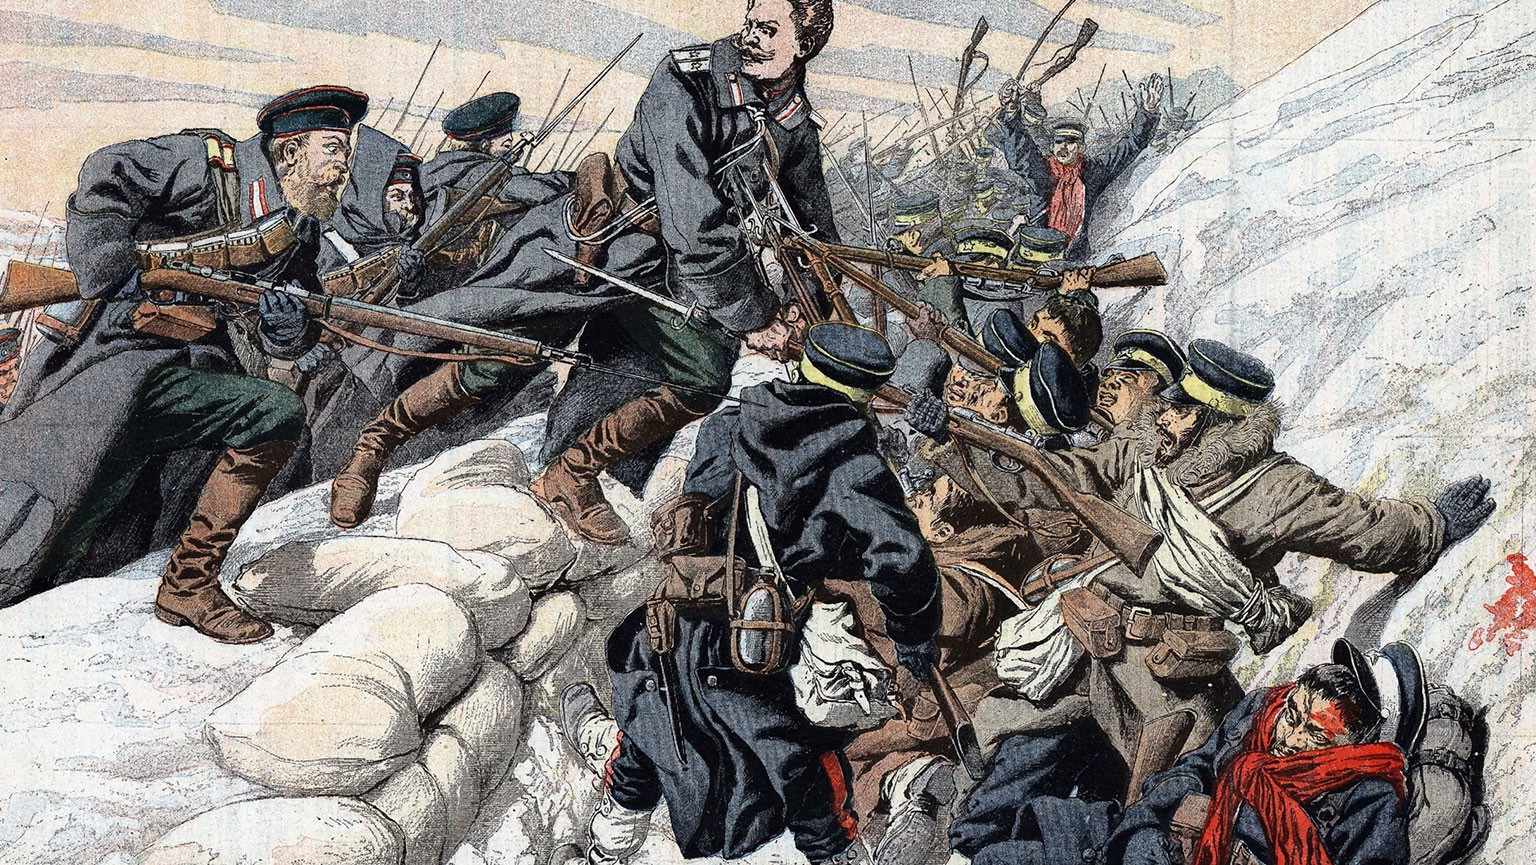 what effect did the outcome of the russo-japanese war have on the russian people?